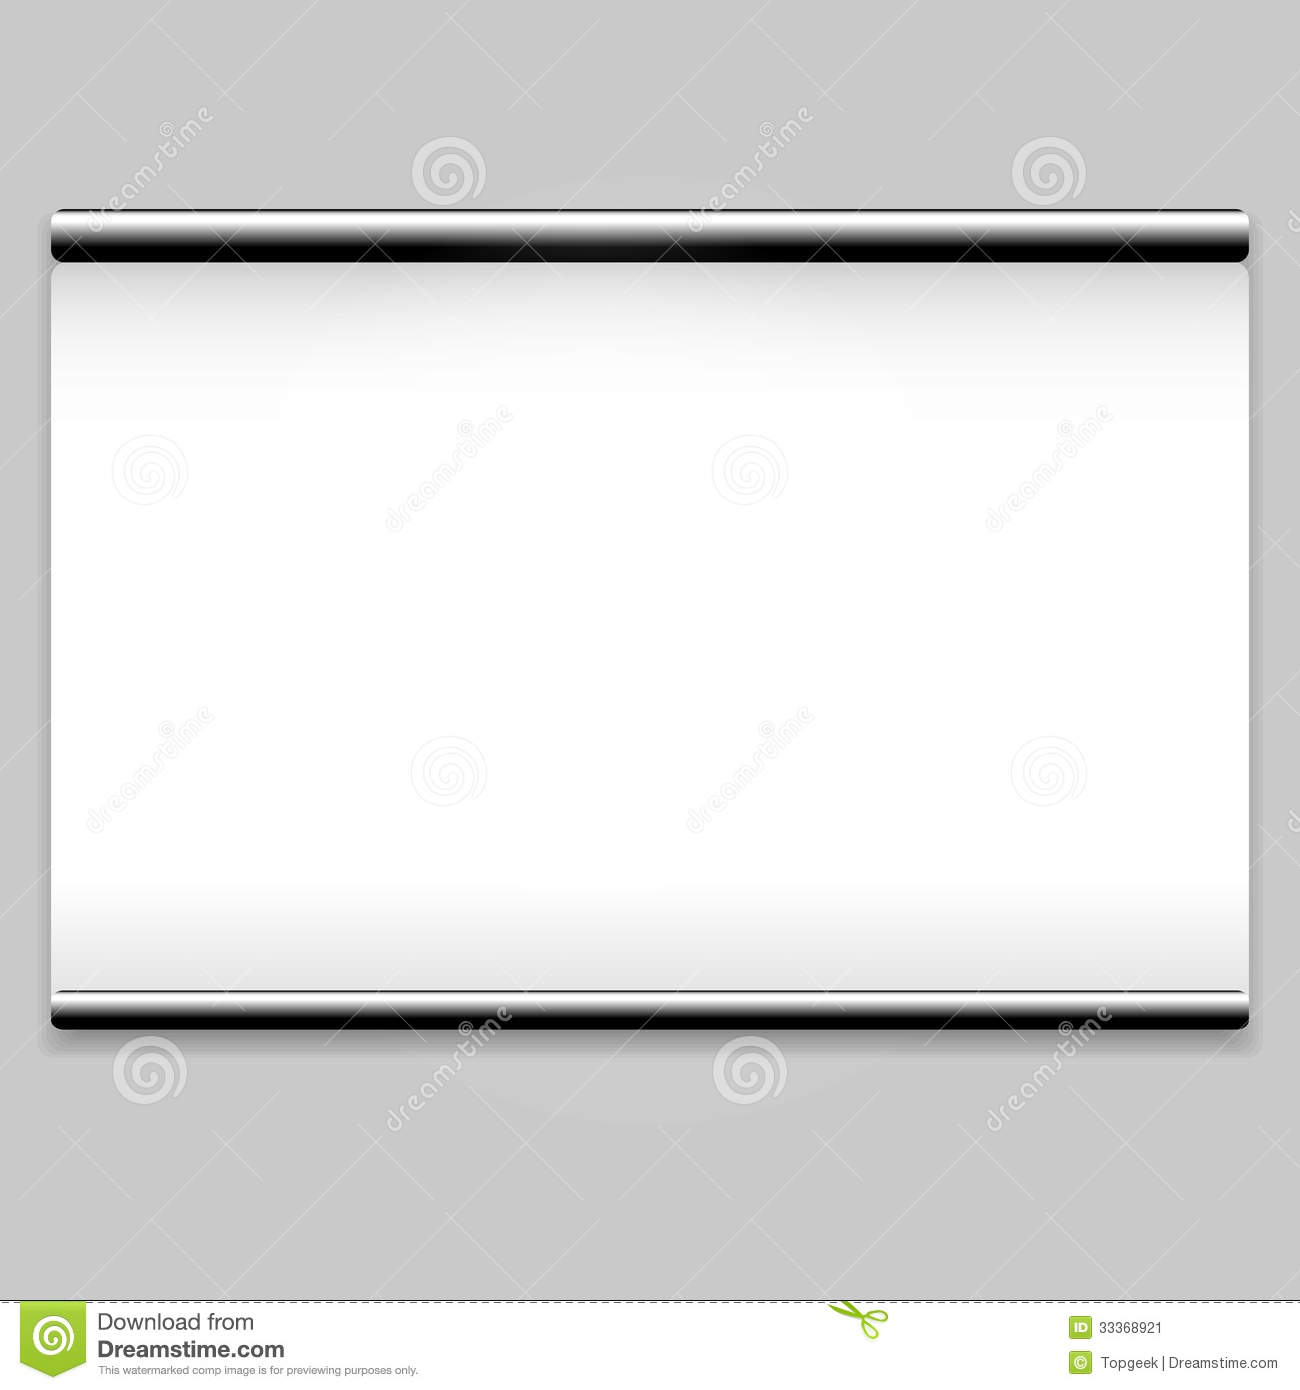 pics How to Clean a Projector Screen